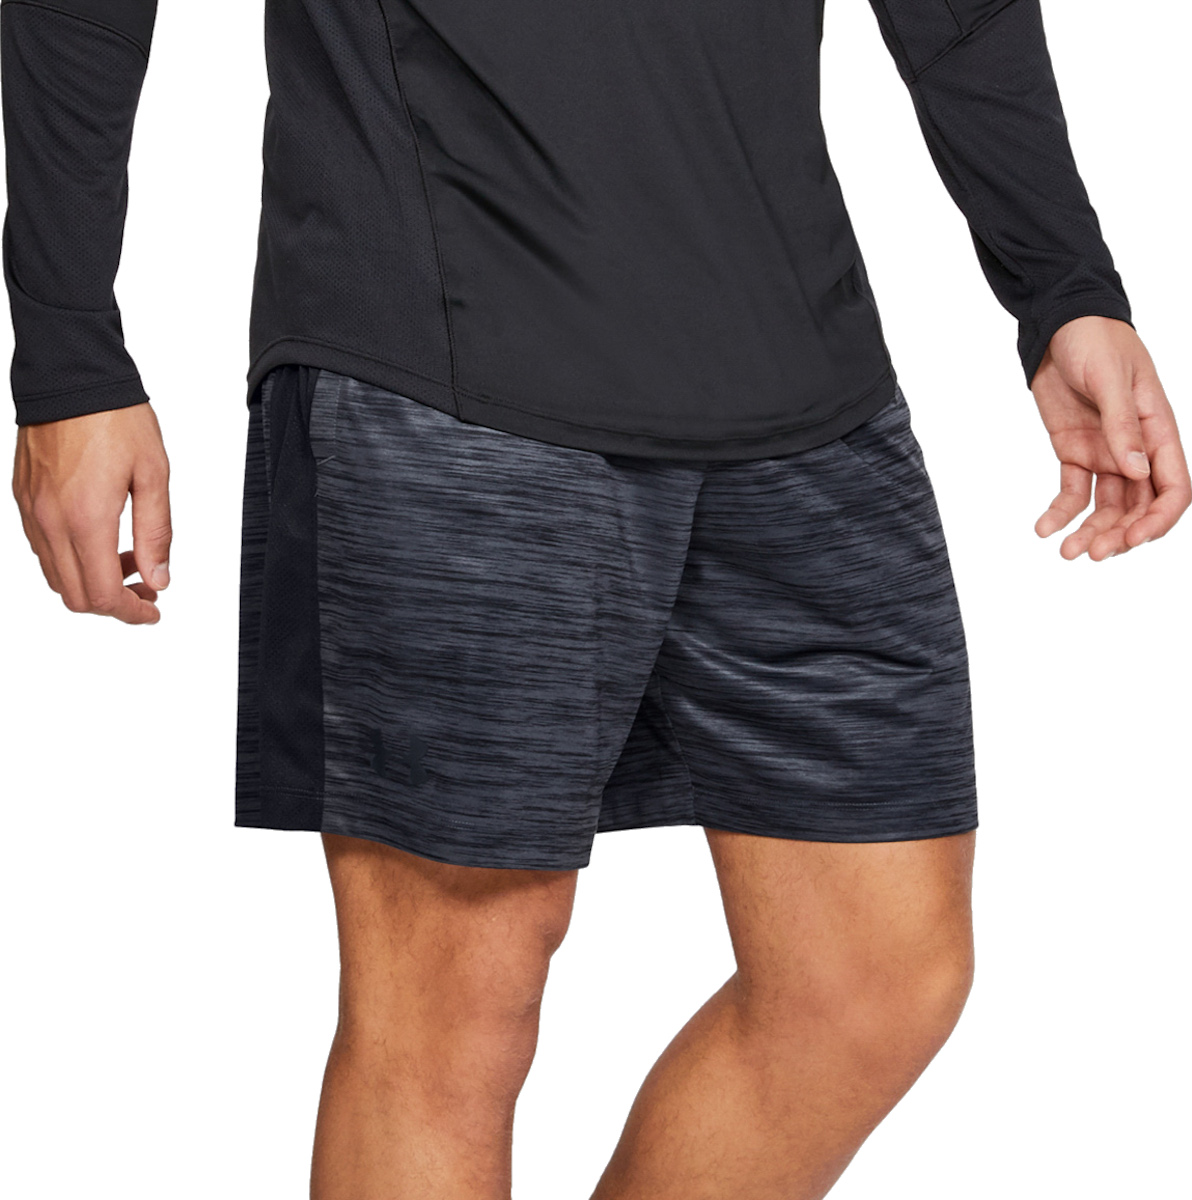 Šortky Under Armour UA MK-1 7in Twist Shorts